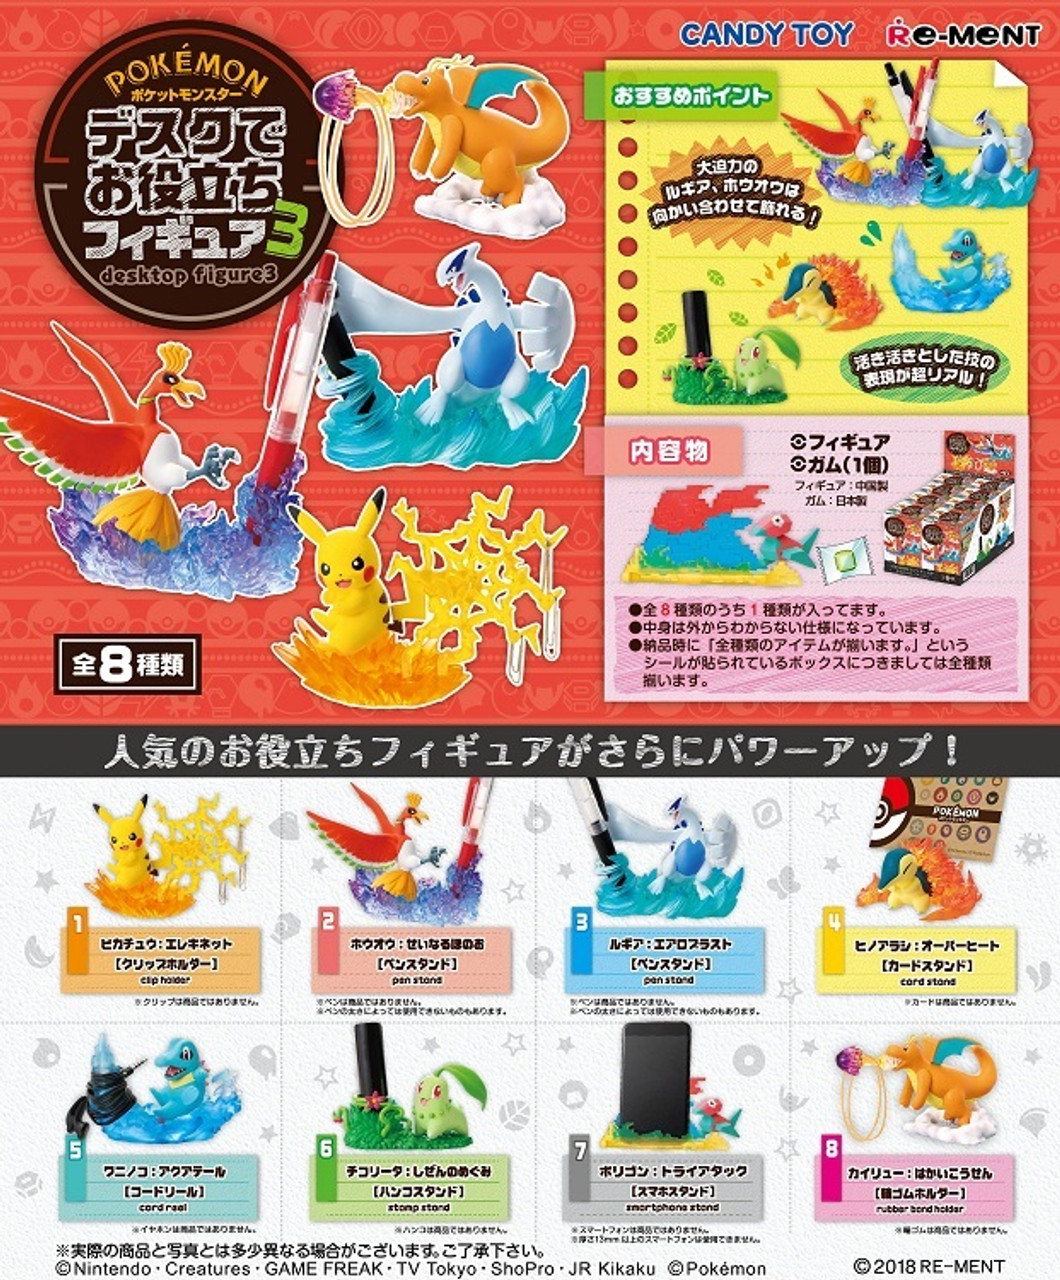 Re-Ment Miniature PokeMon Pikachu Desktop Figure Part 3 # 4 Cyndaquil